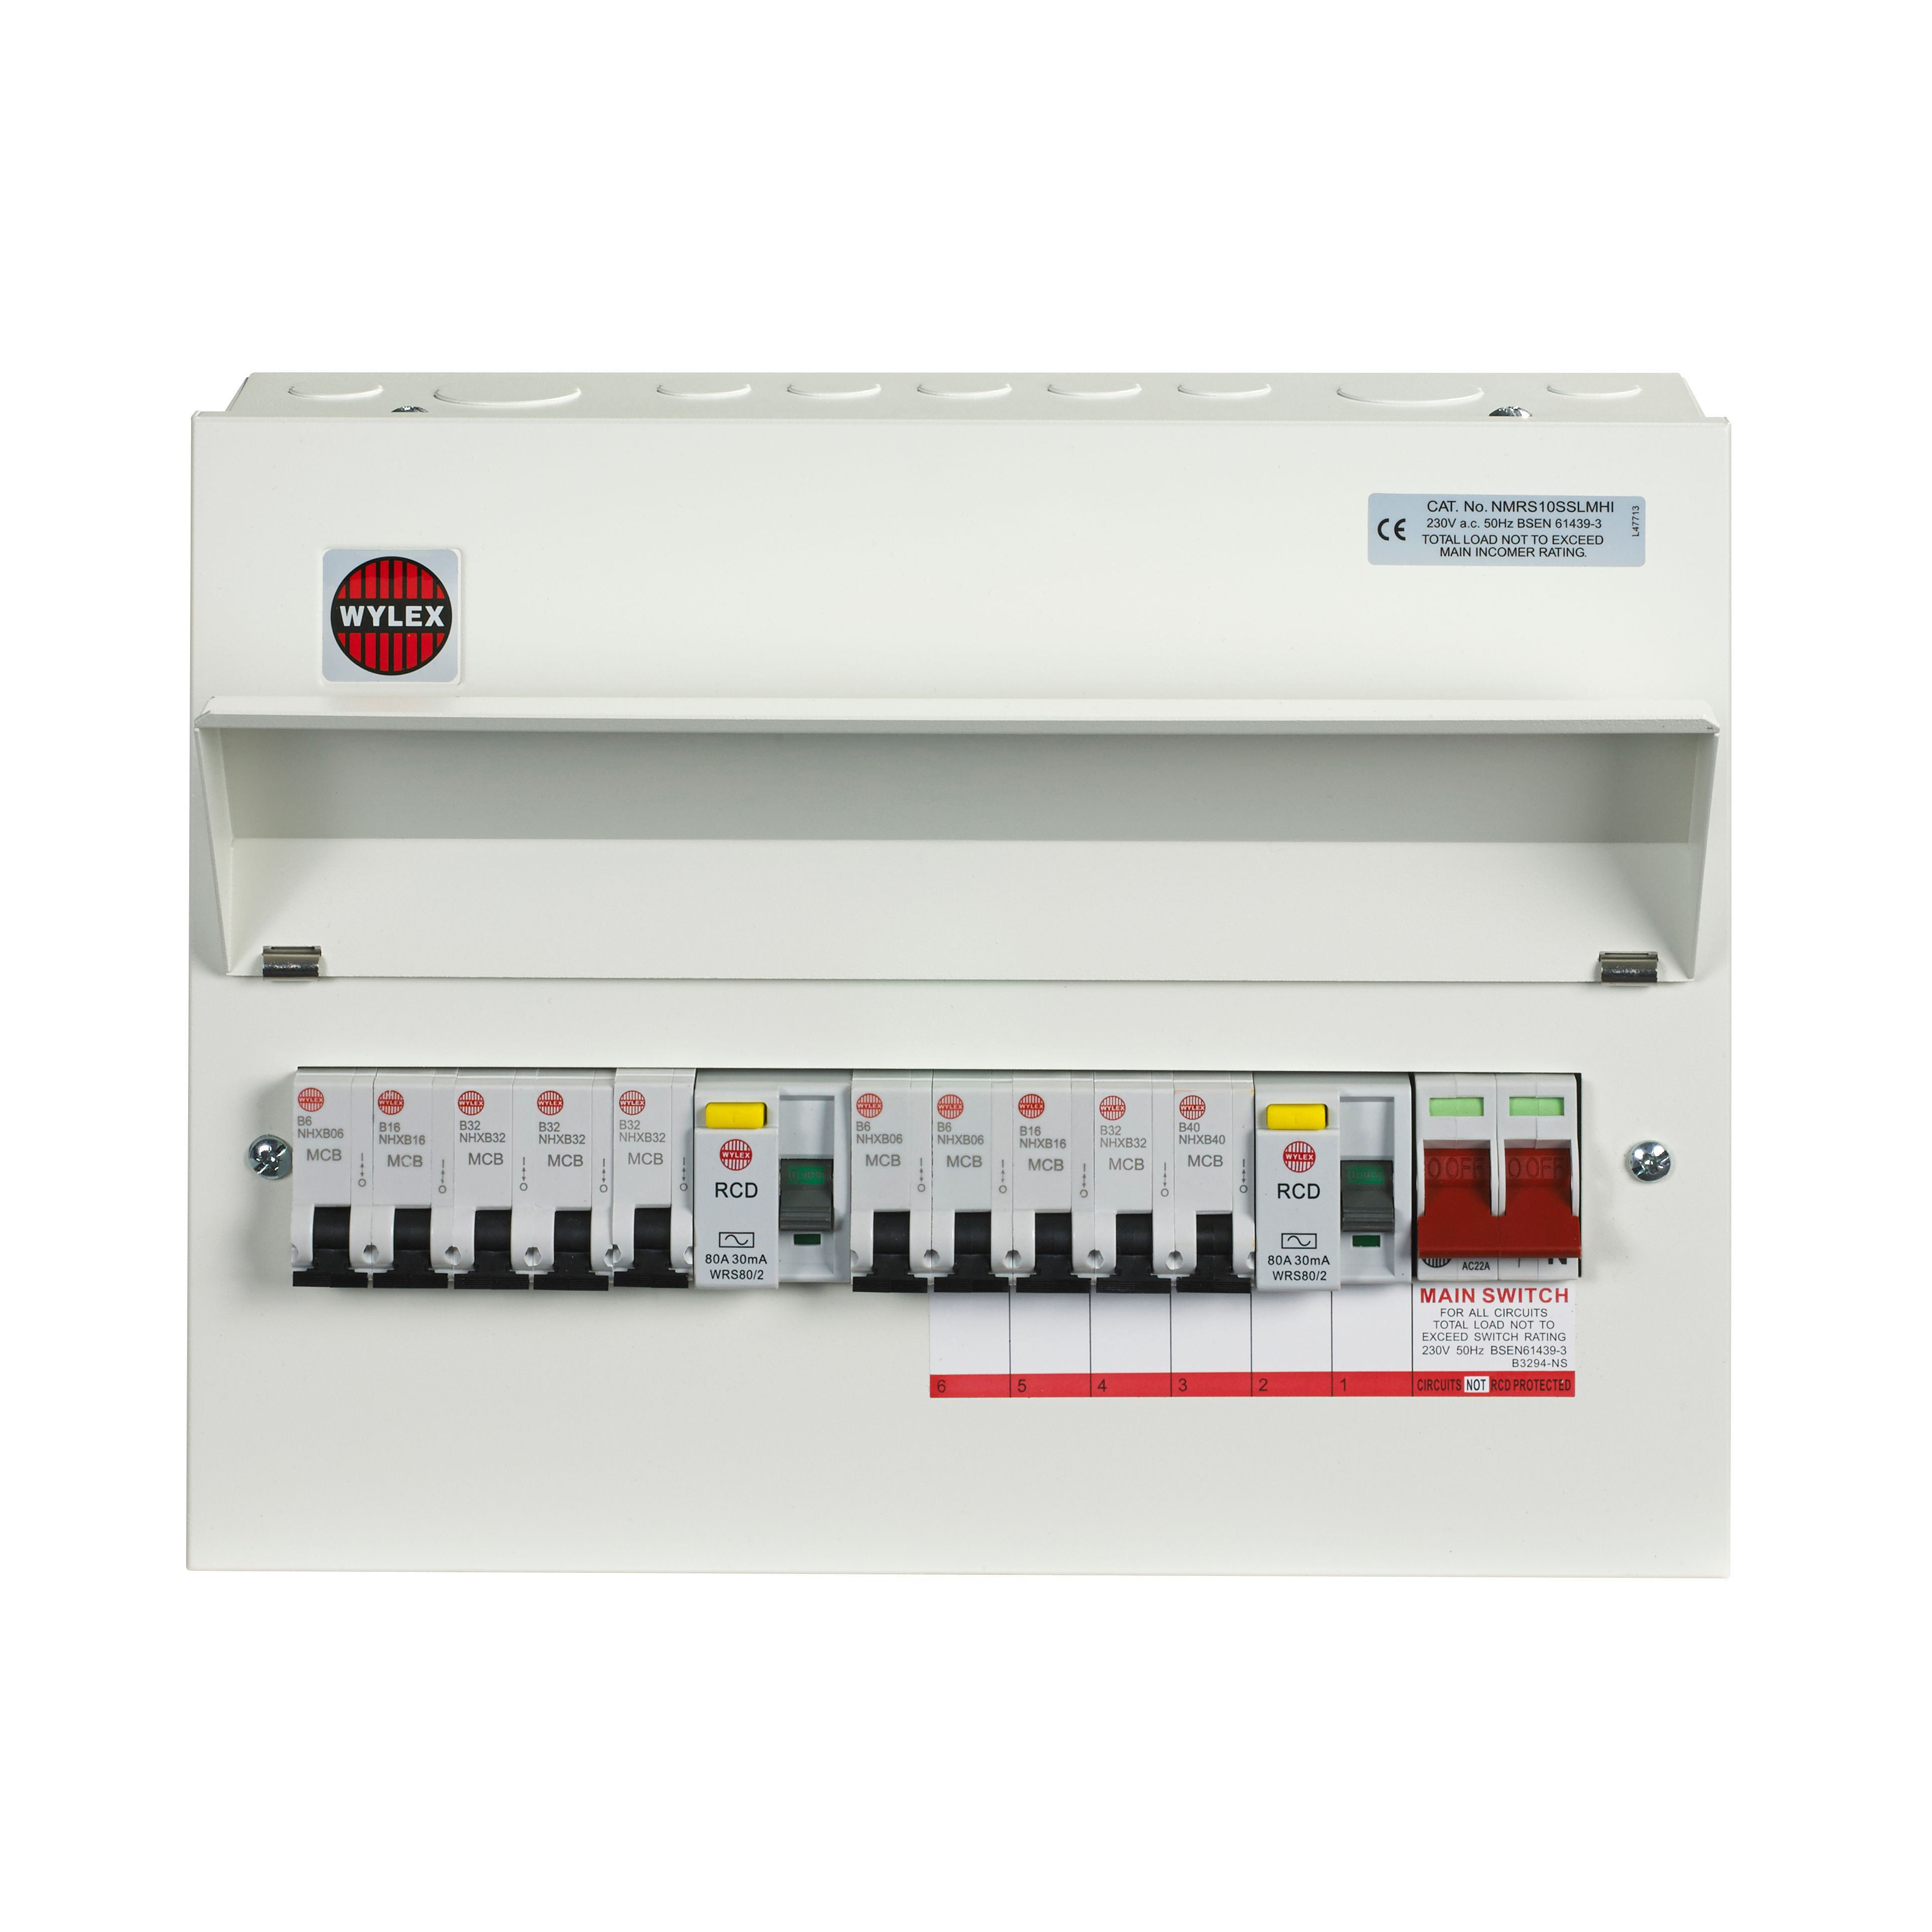 Enchanting dual rcd consumer unit wiring diagram image collection old fashioned dual rcd consumer unit wiring diagram images cheapraybanclubmaster Choice Image